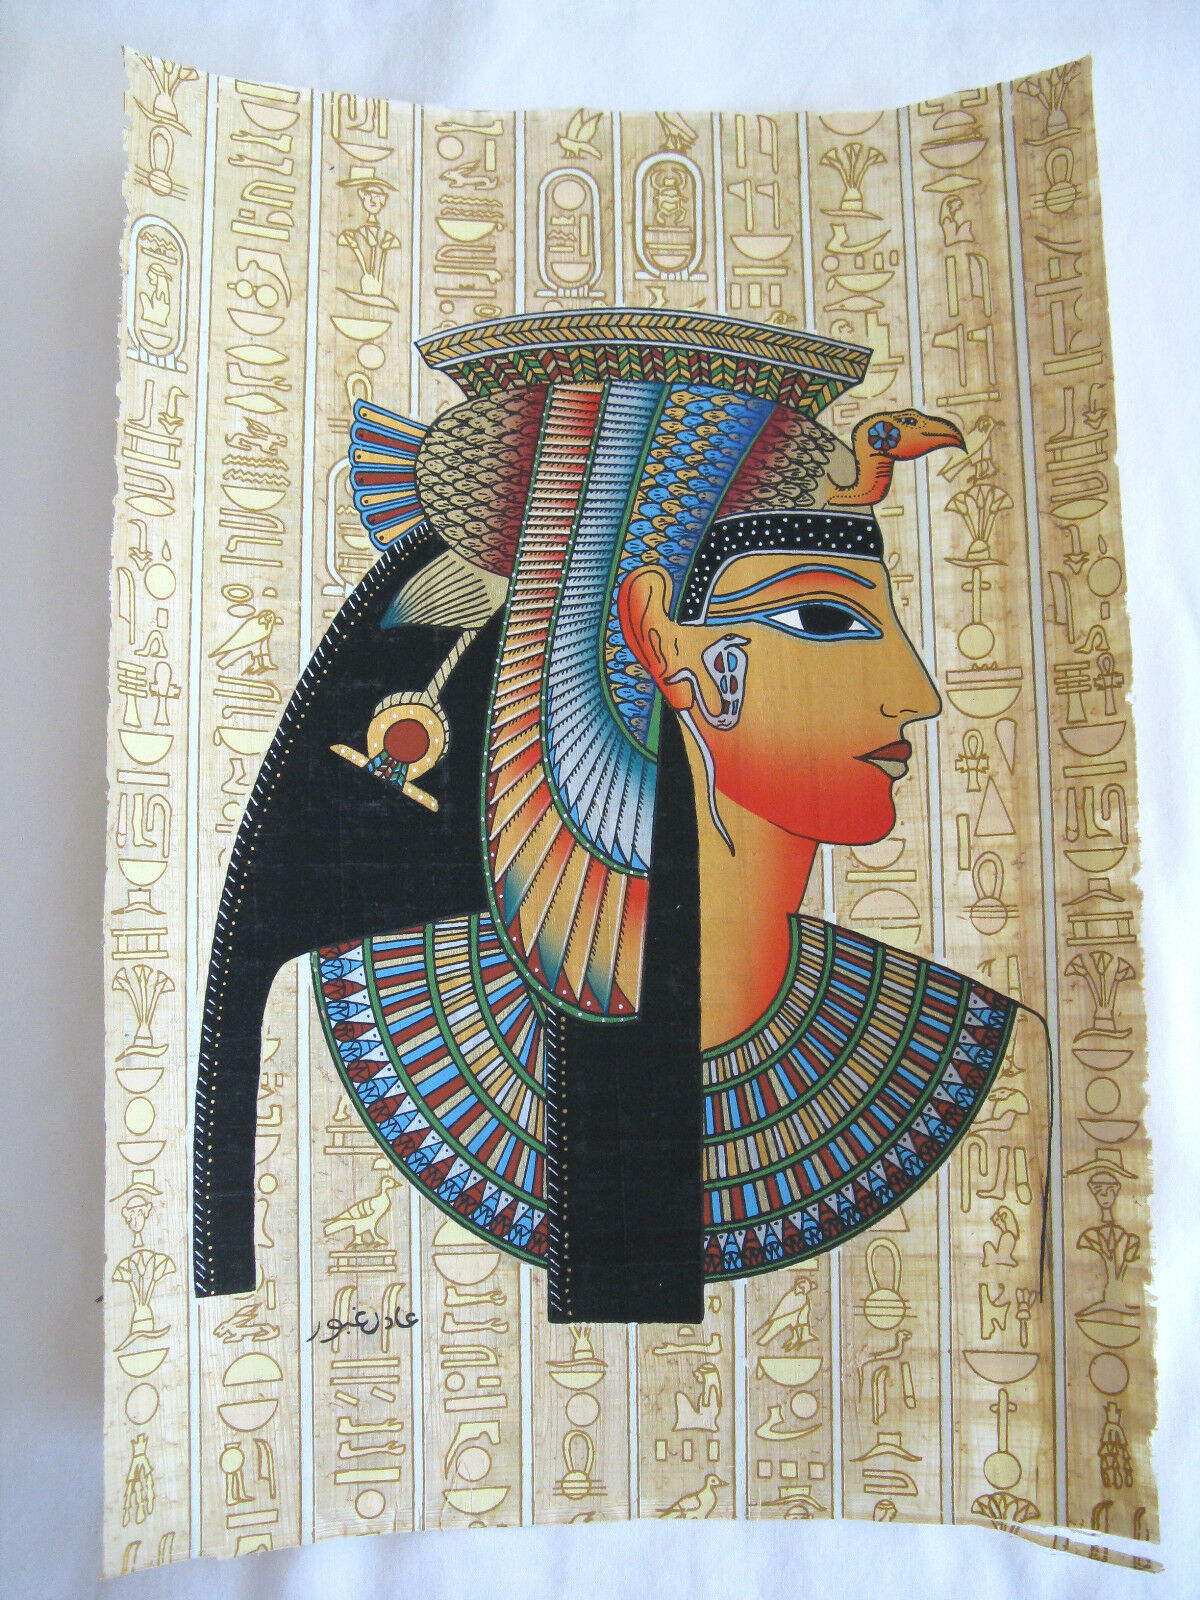 queen cleopatra research paper From the paper: so much of what is believed to be true of ancient egypt and its most famous queen, cleopatra is a strange mixture of fact and legend.